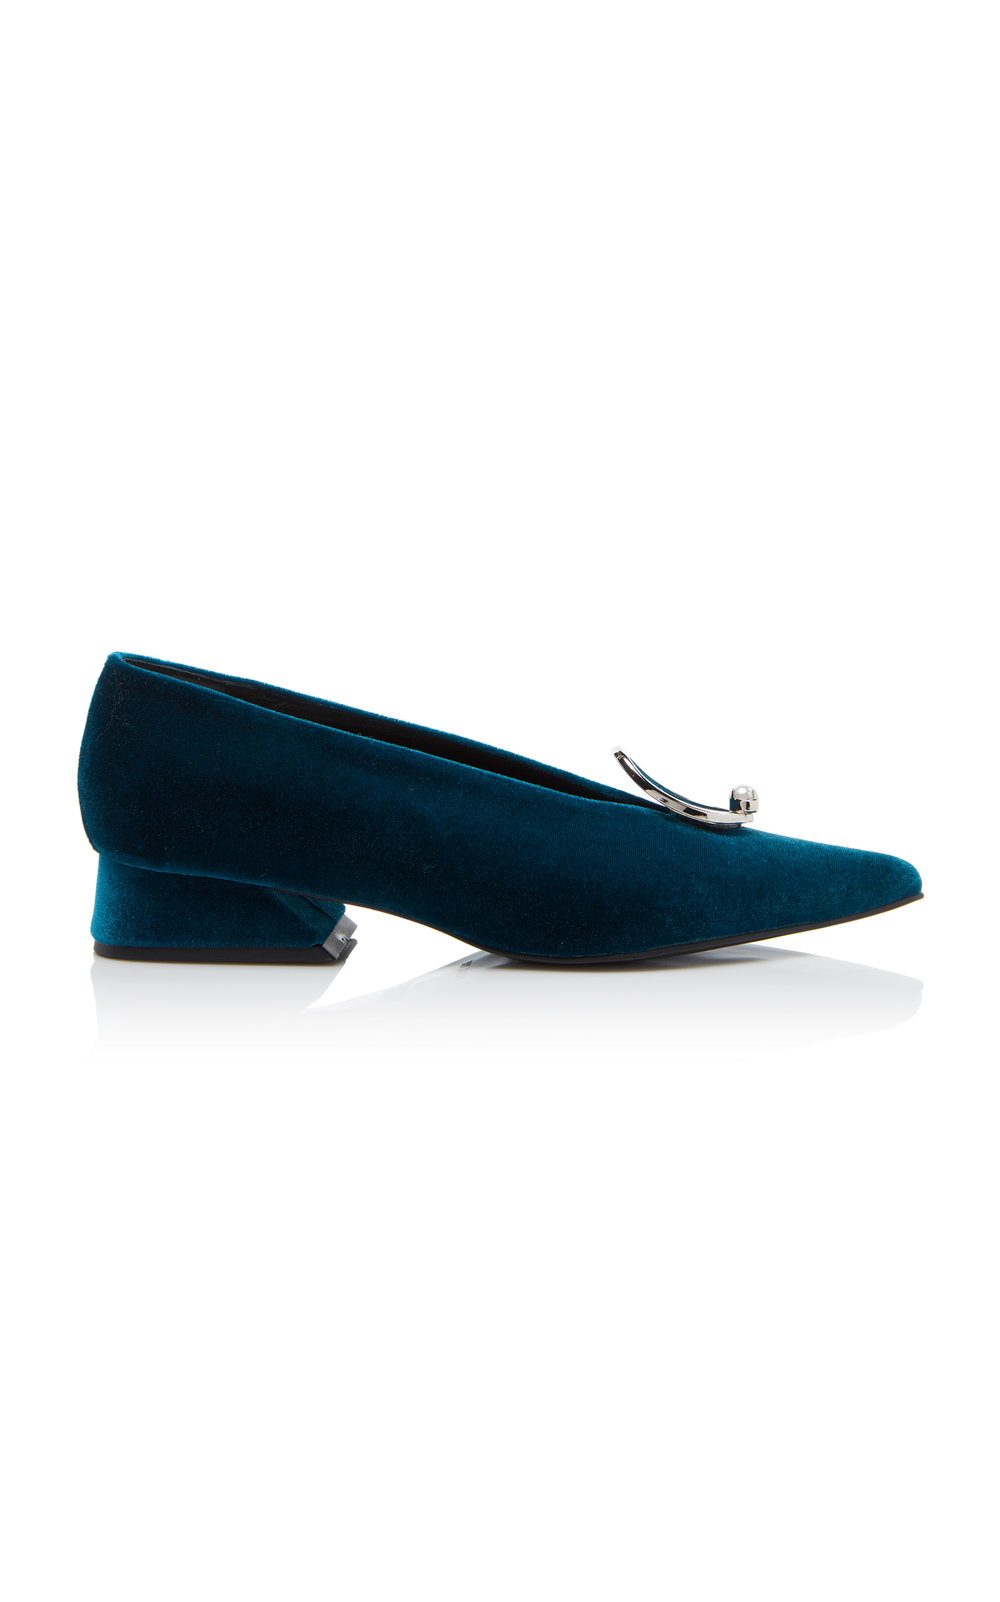 large_yuul-yie-blue-pearl-kitten-heel-pump.jpg